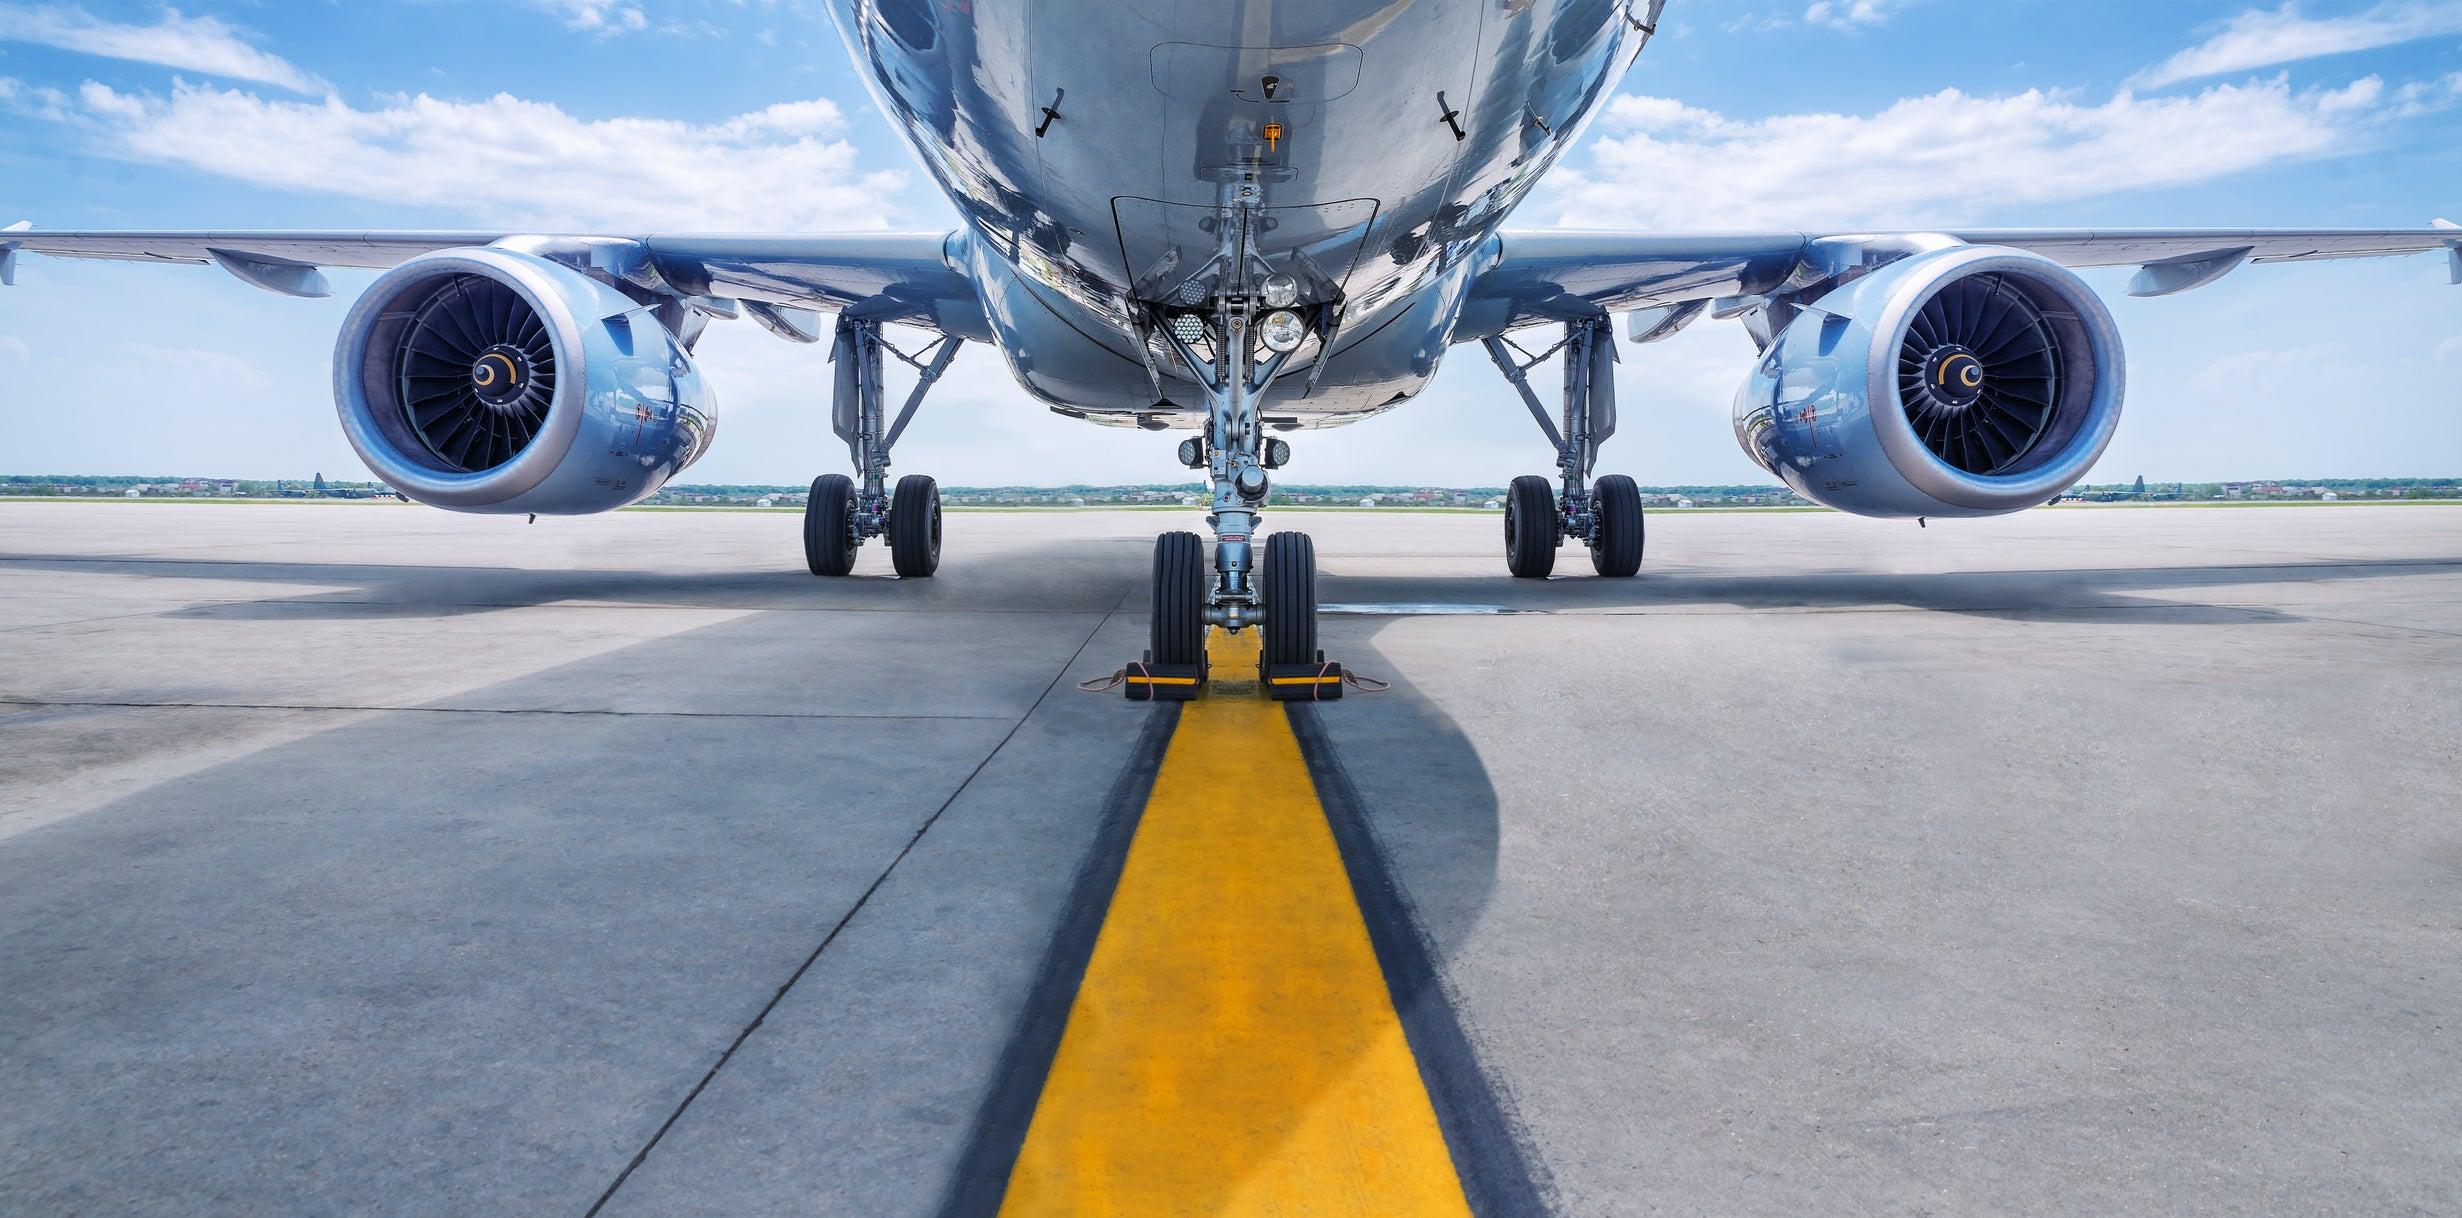 The bottom of an airliner on a runway.